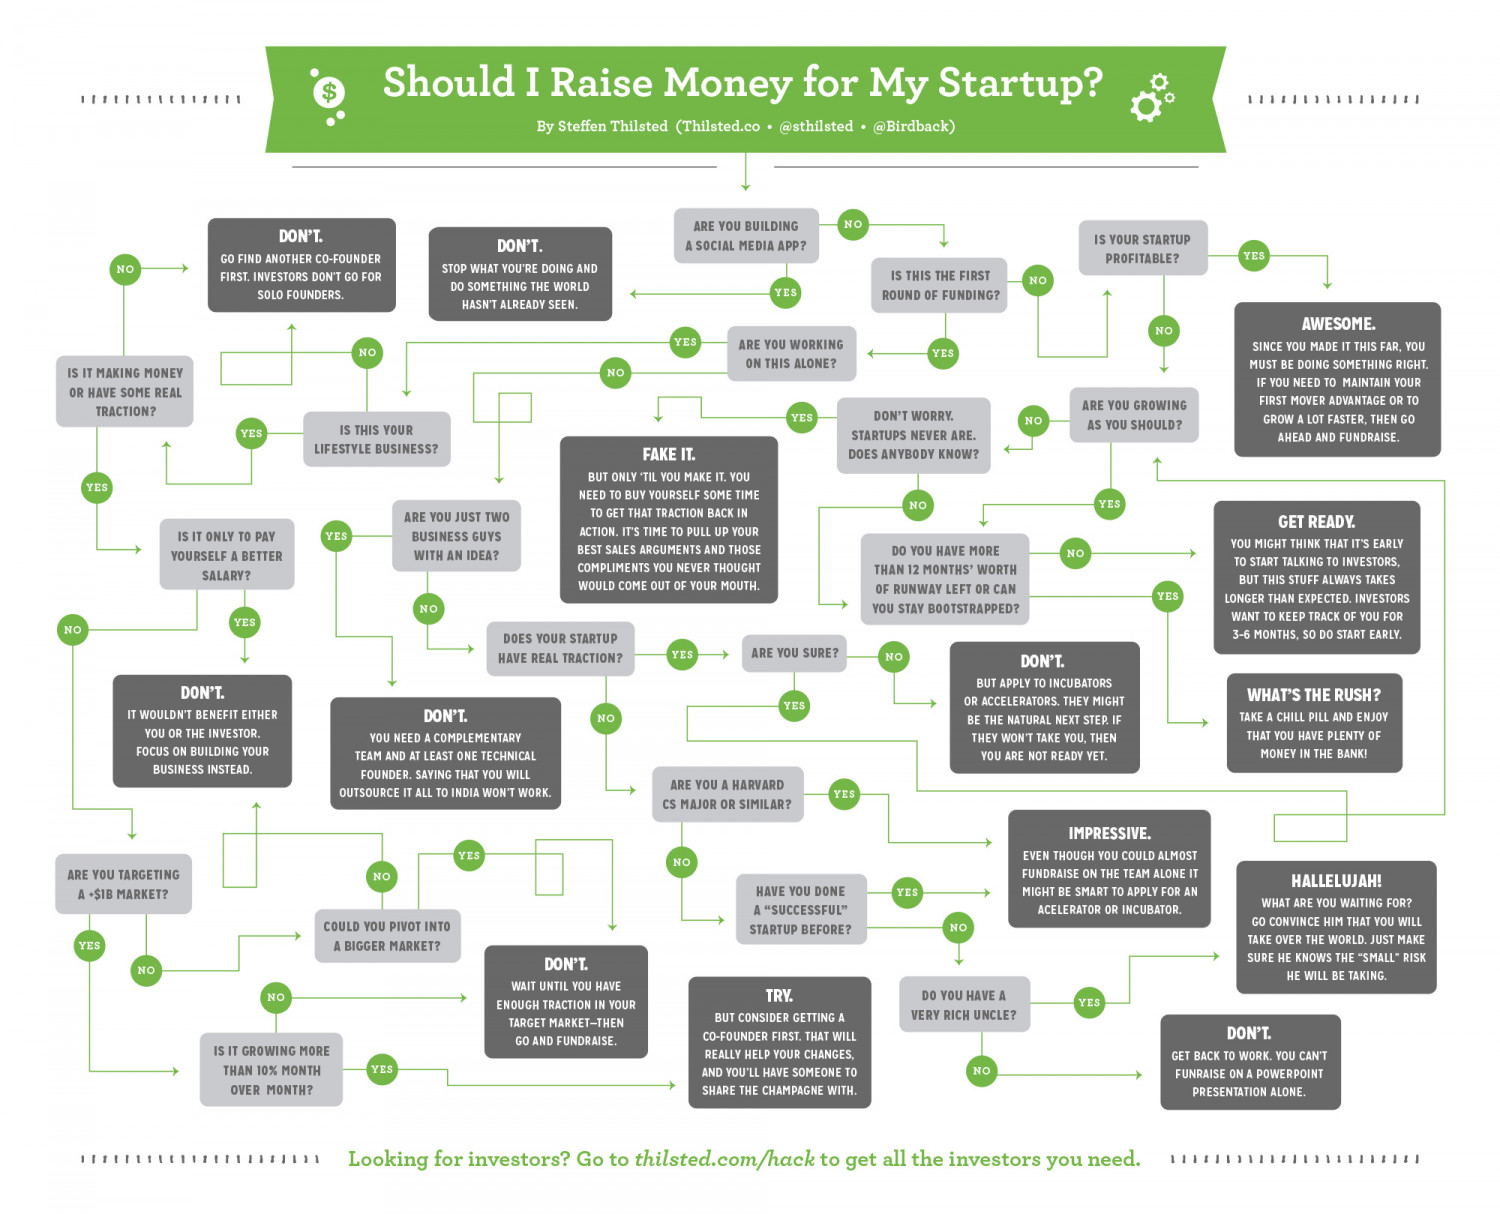 Should I Raise Money For My Startup? Infographic